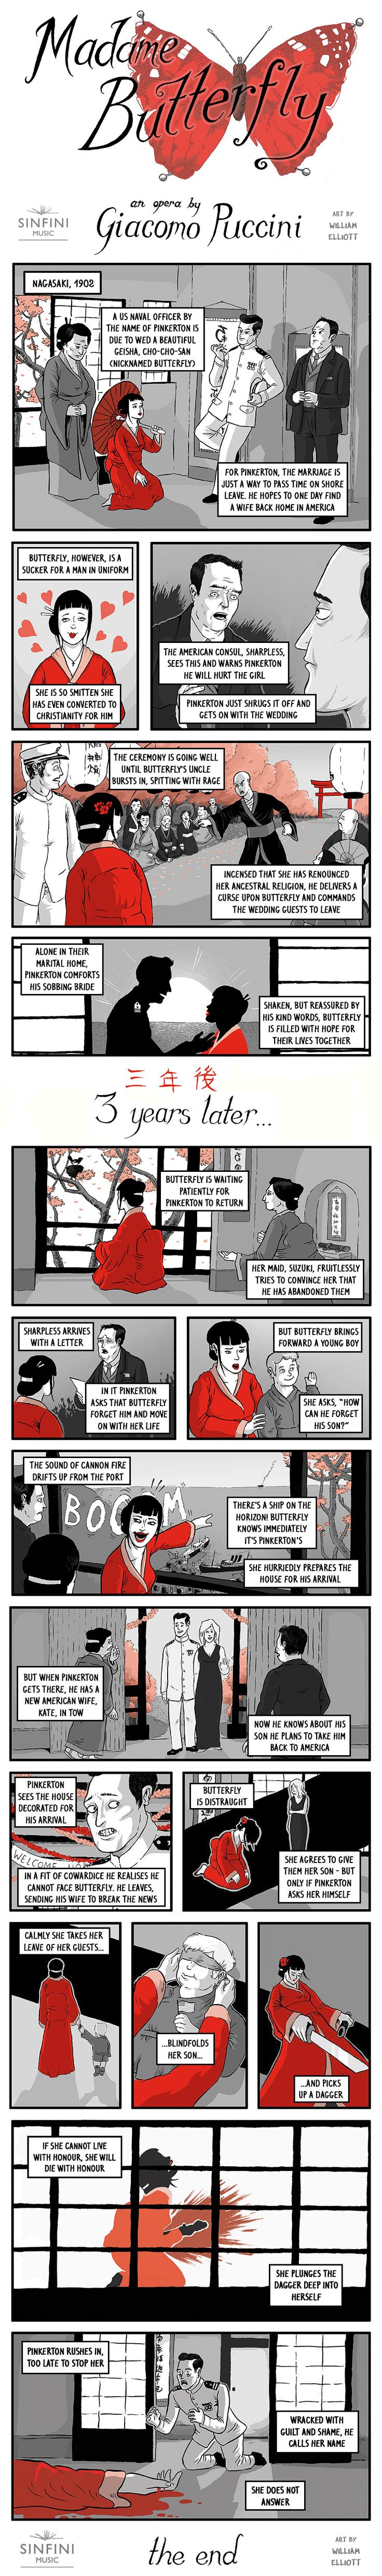 Graphic artist William Elliott created a short comic strip explaining Madama Butterfly